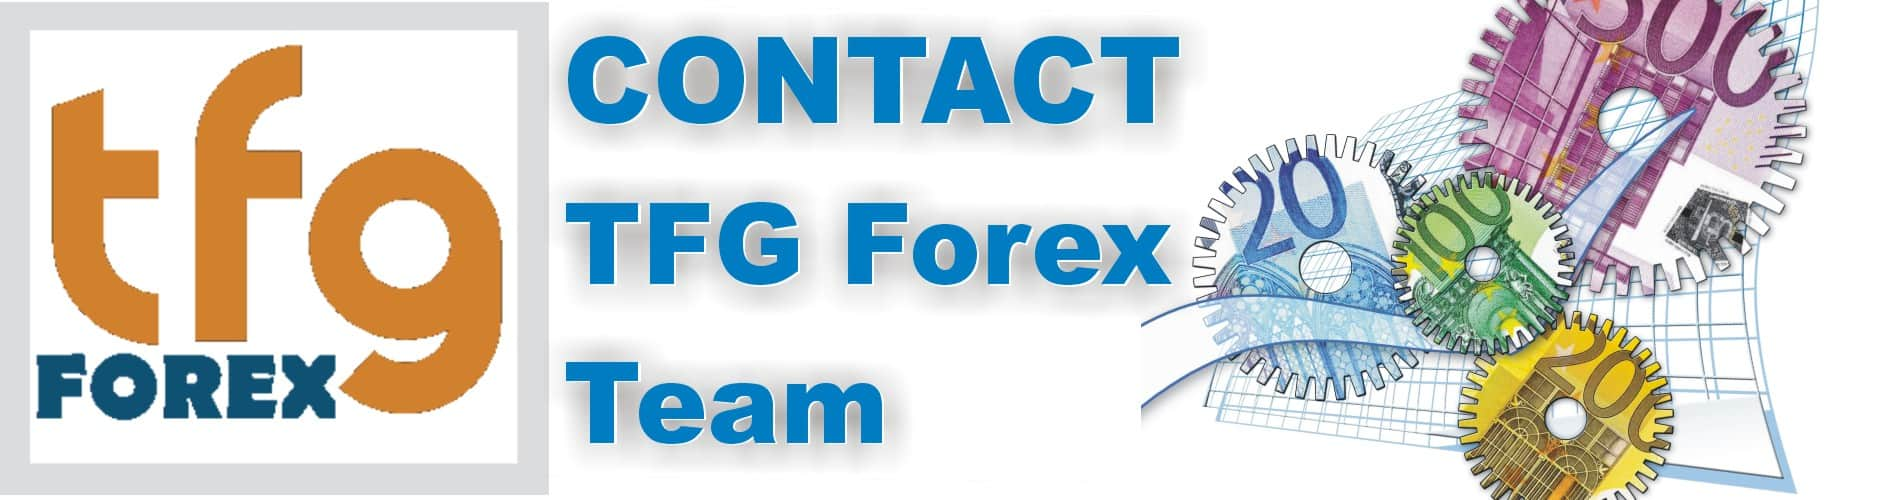 Contact-TFG Forex